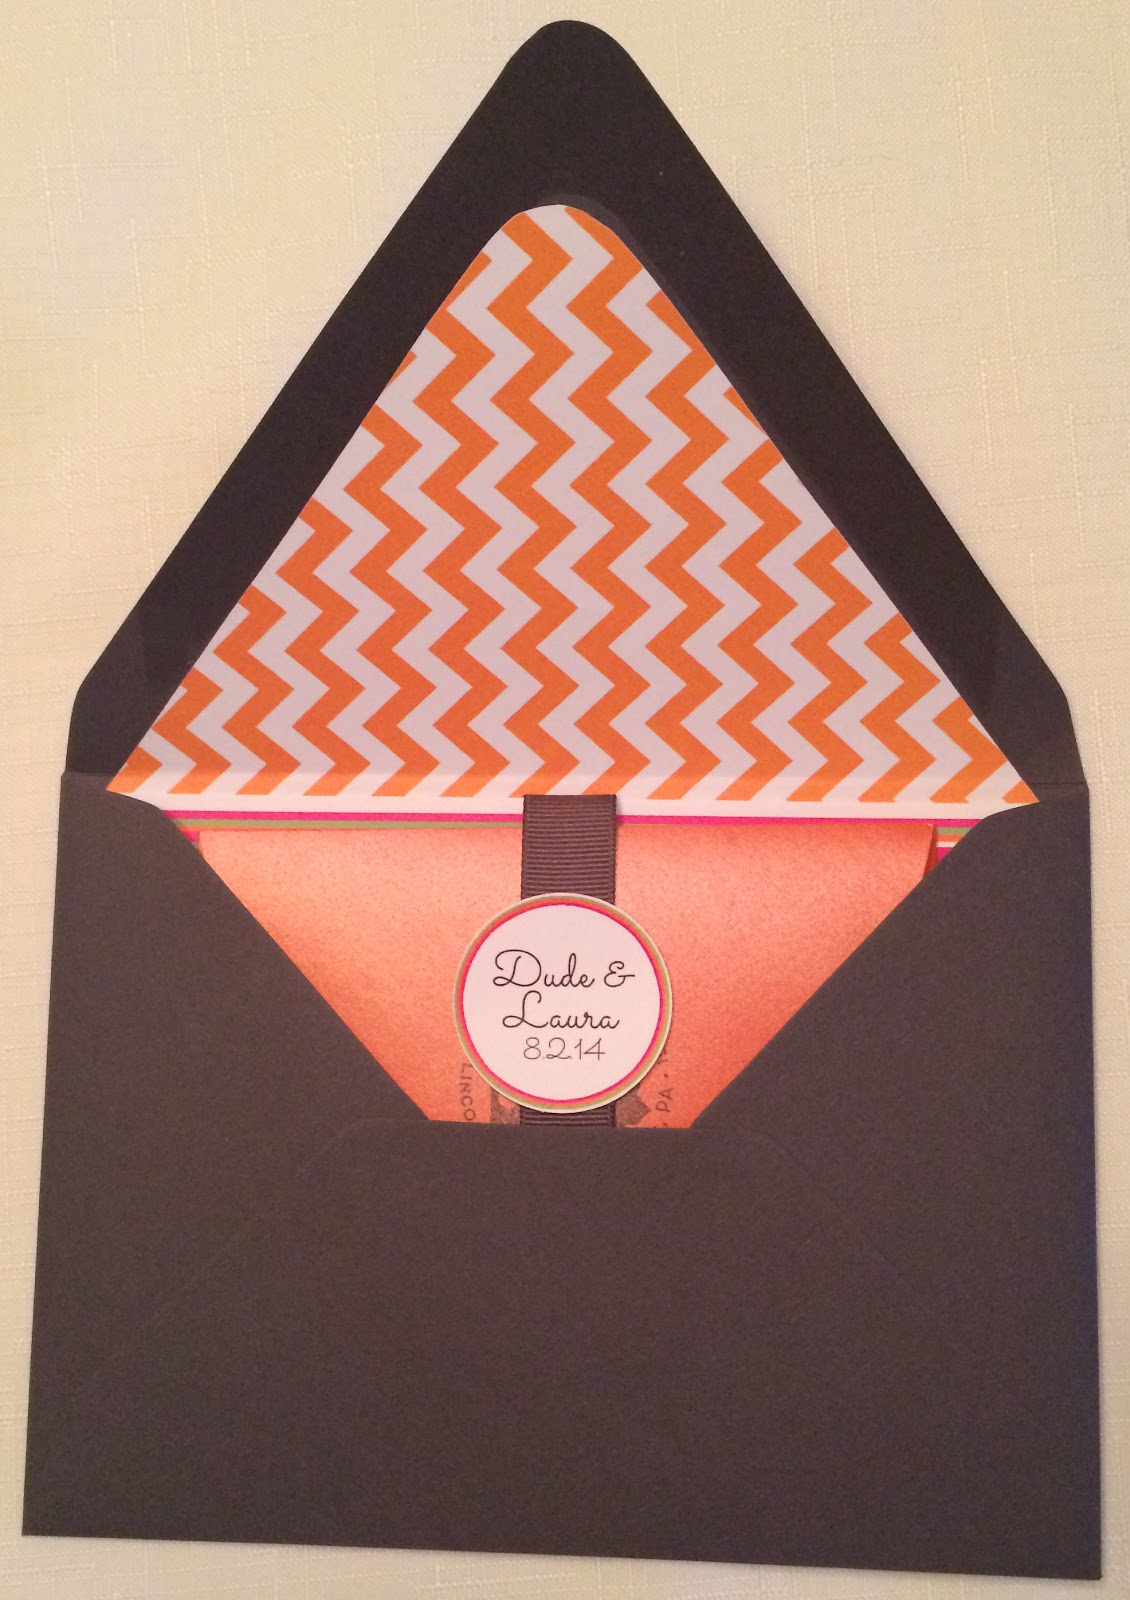 Doeblerghini Bunch:  Wedding Invite Details - Envelope Lined